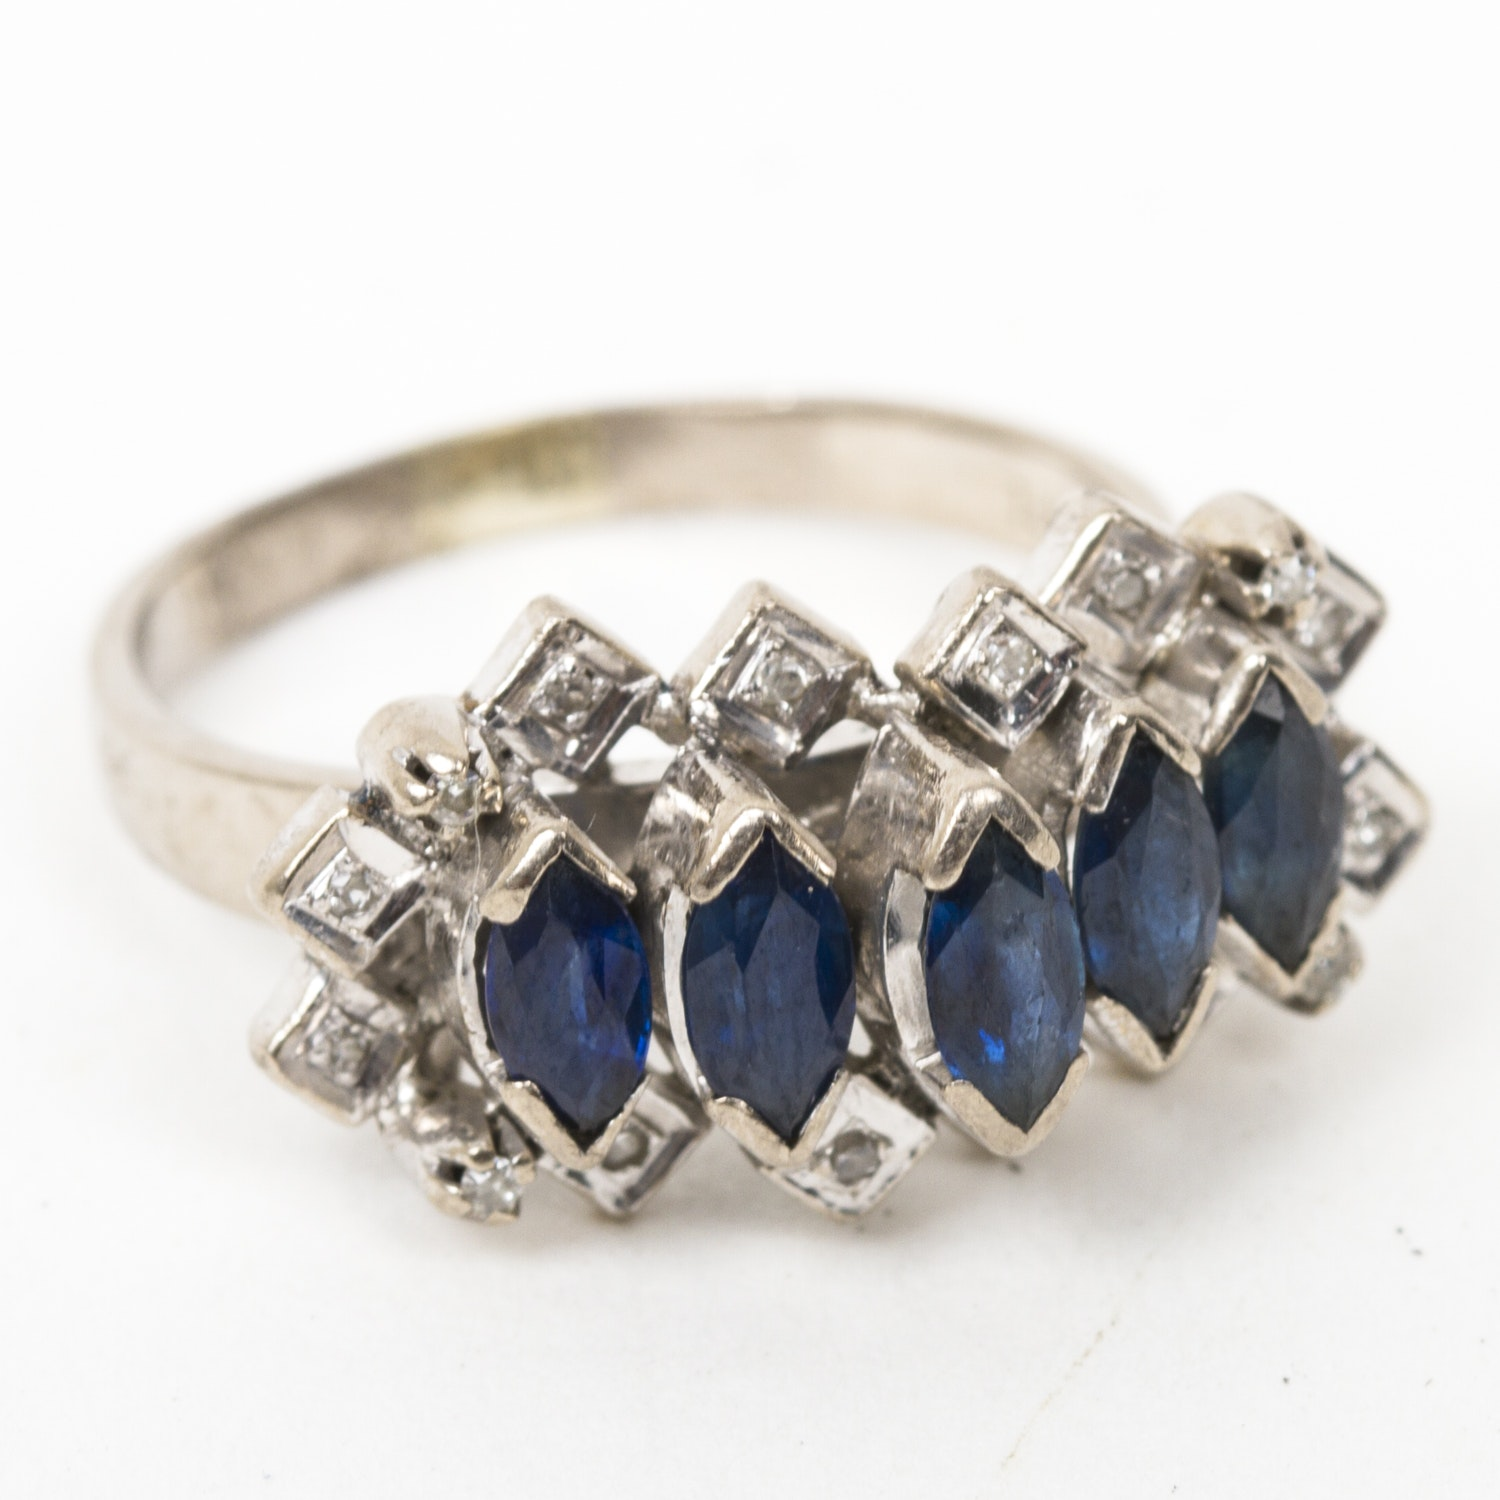 14K White Gold, Sapphire, and Diamond Cluster Ring